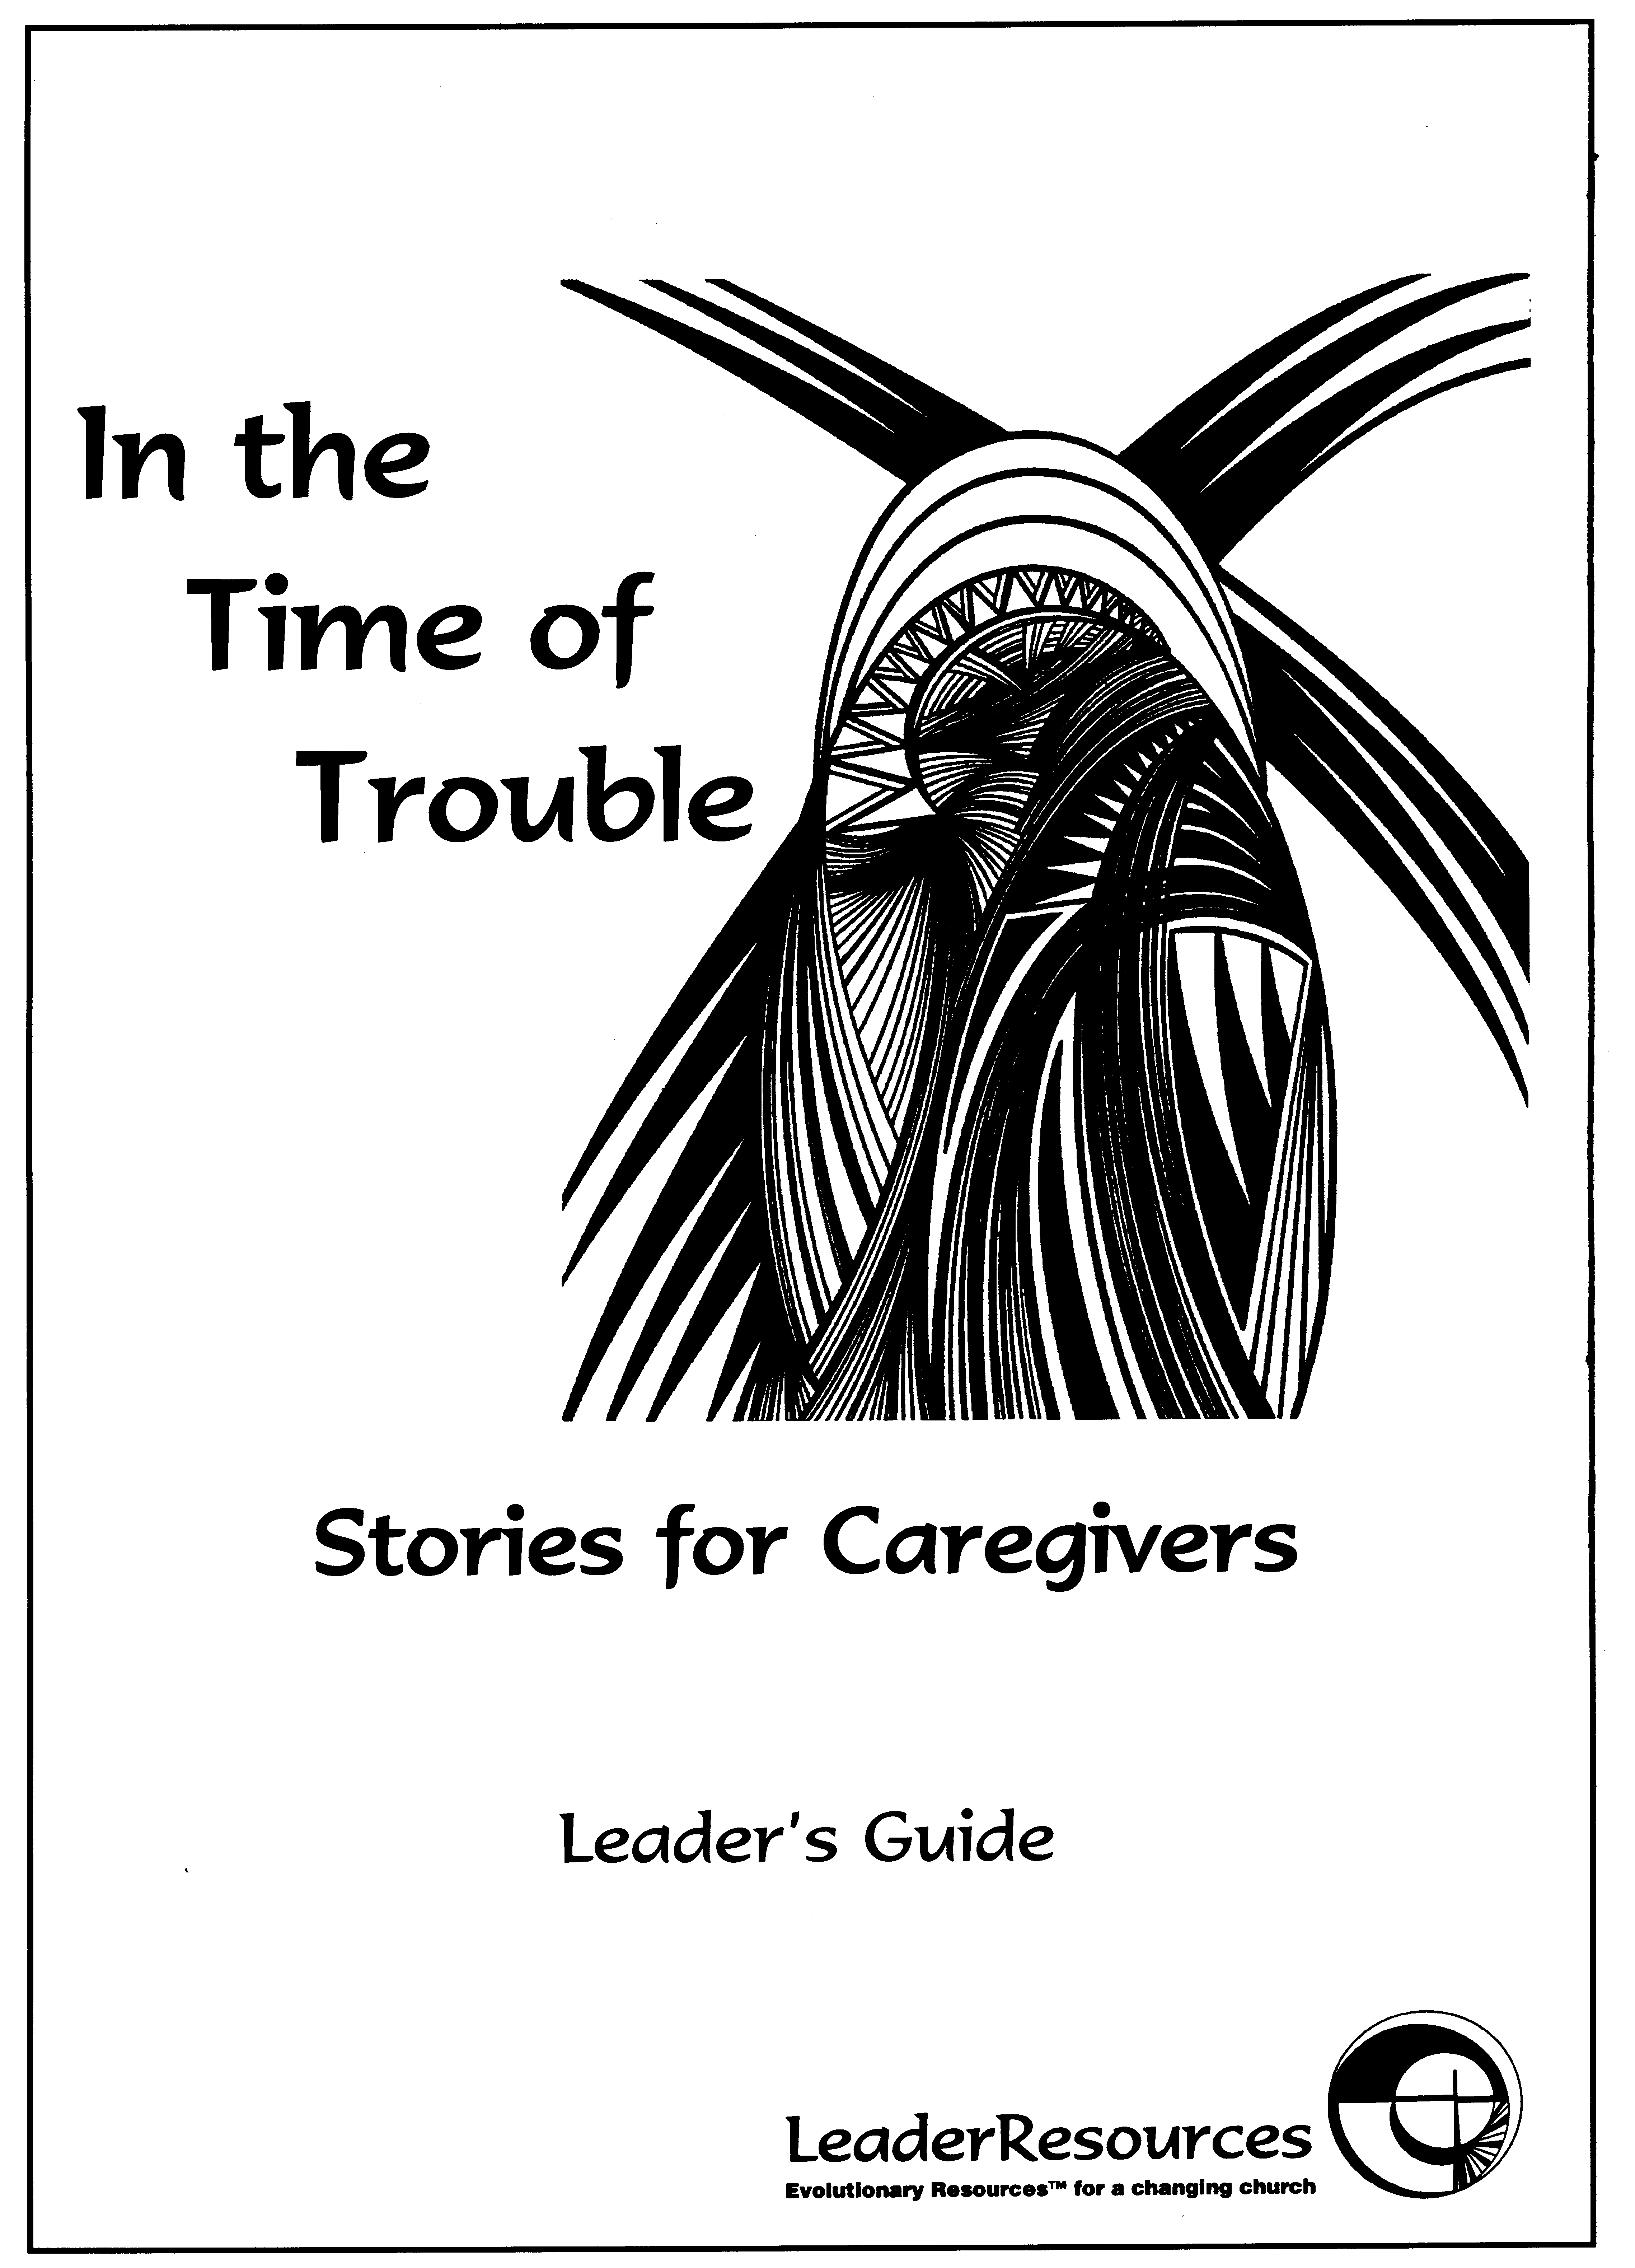 In the Time of Trouble: Case Studies for Caregivers